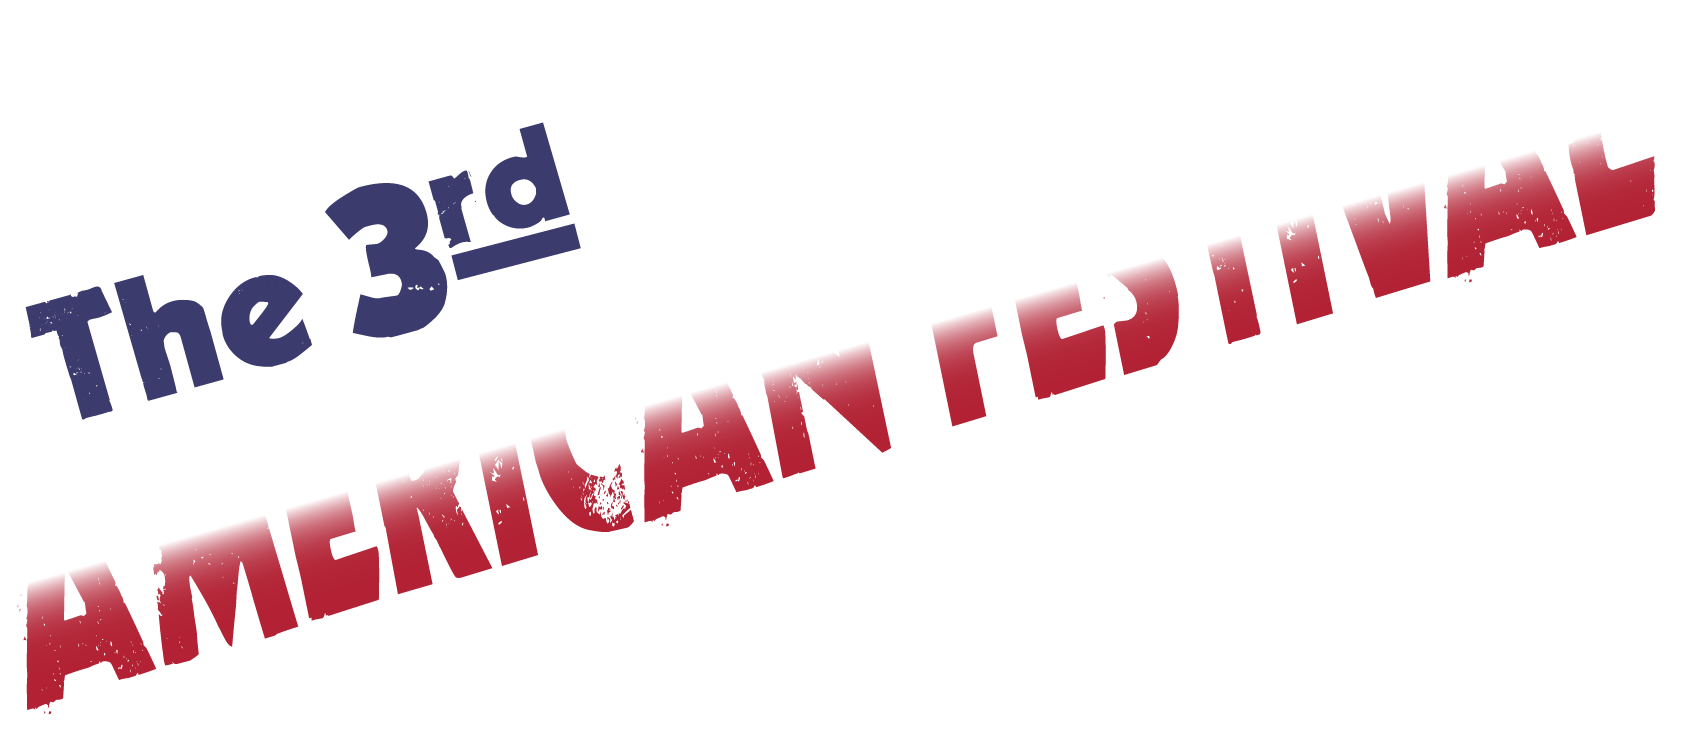 The 3rd AMERICAN FESTIVAL